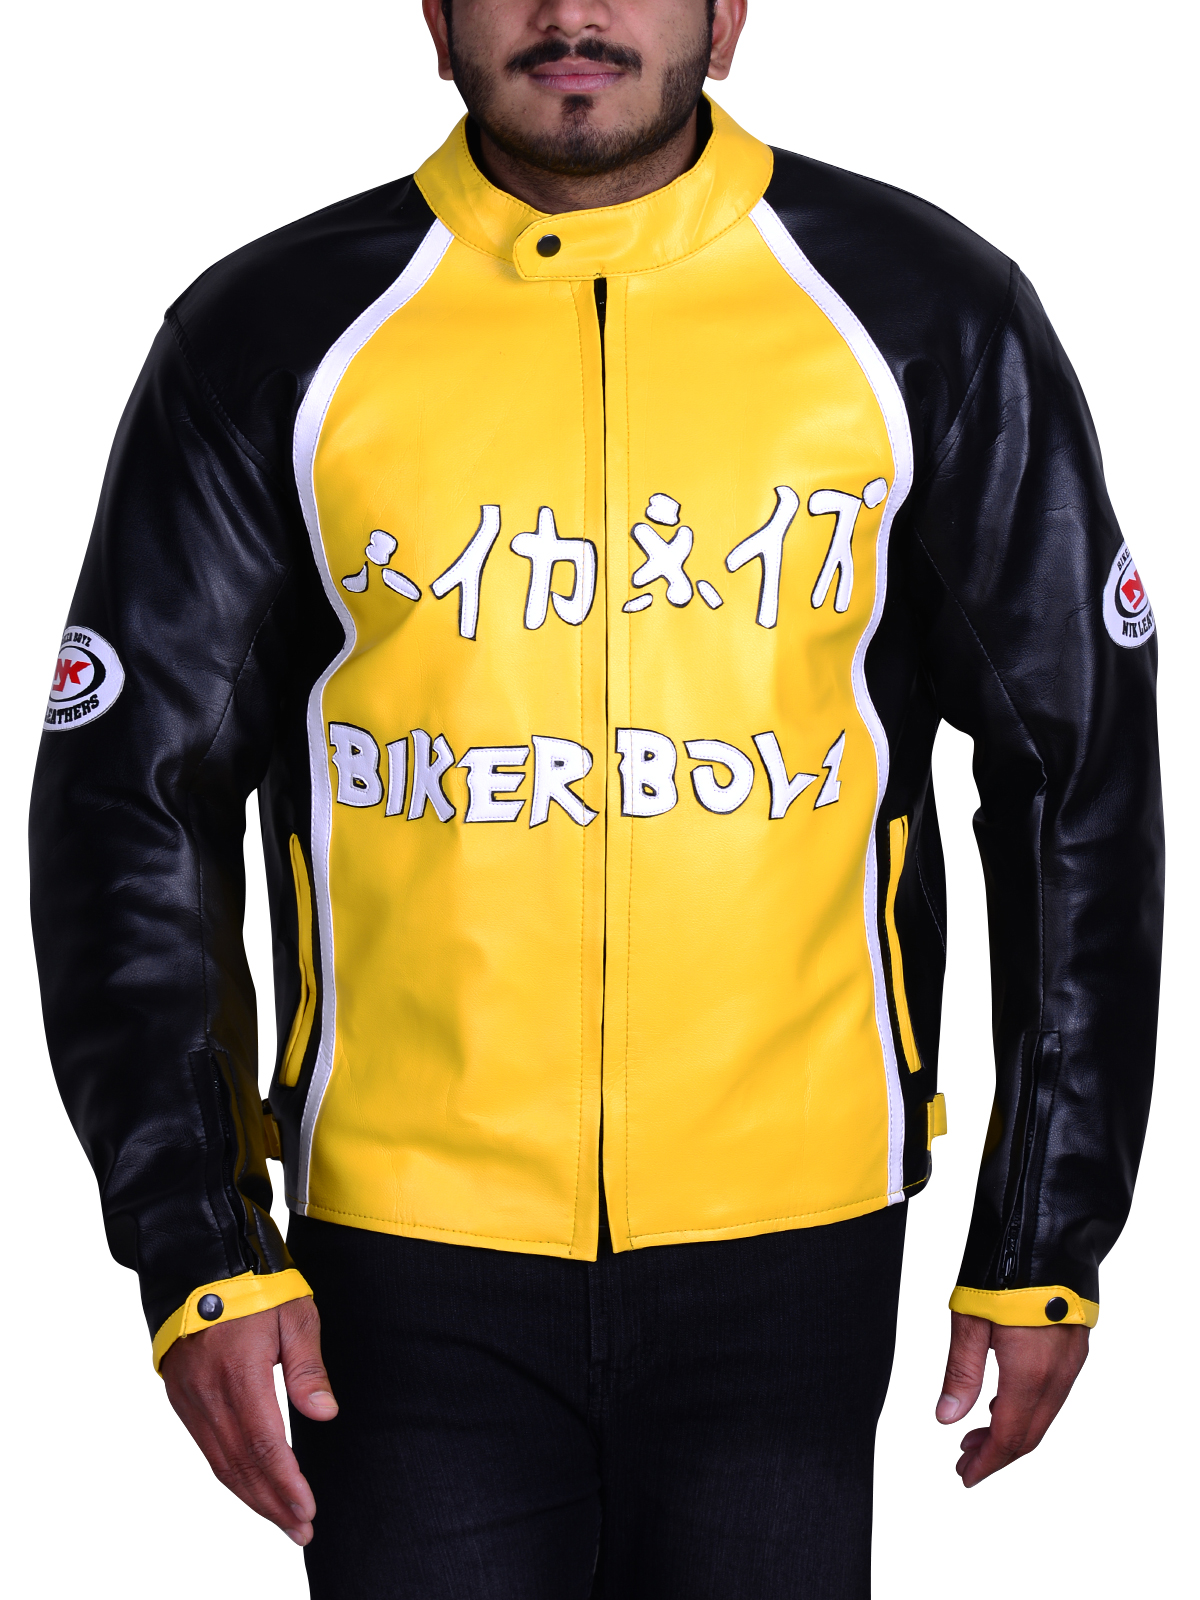 Derek Luke Biker Boyz Yellow Jacket - Instylejackets